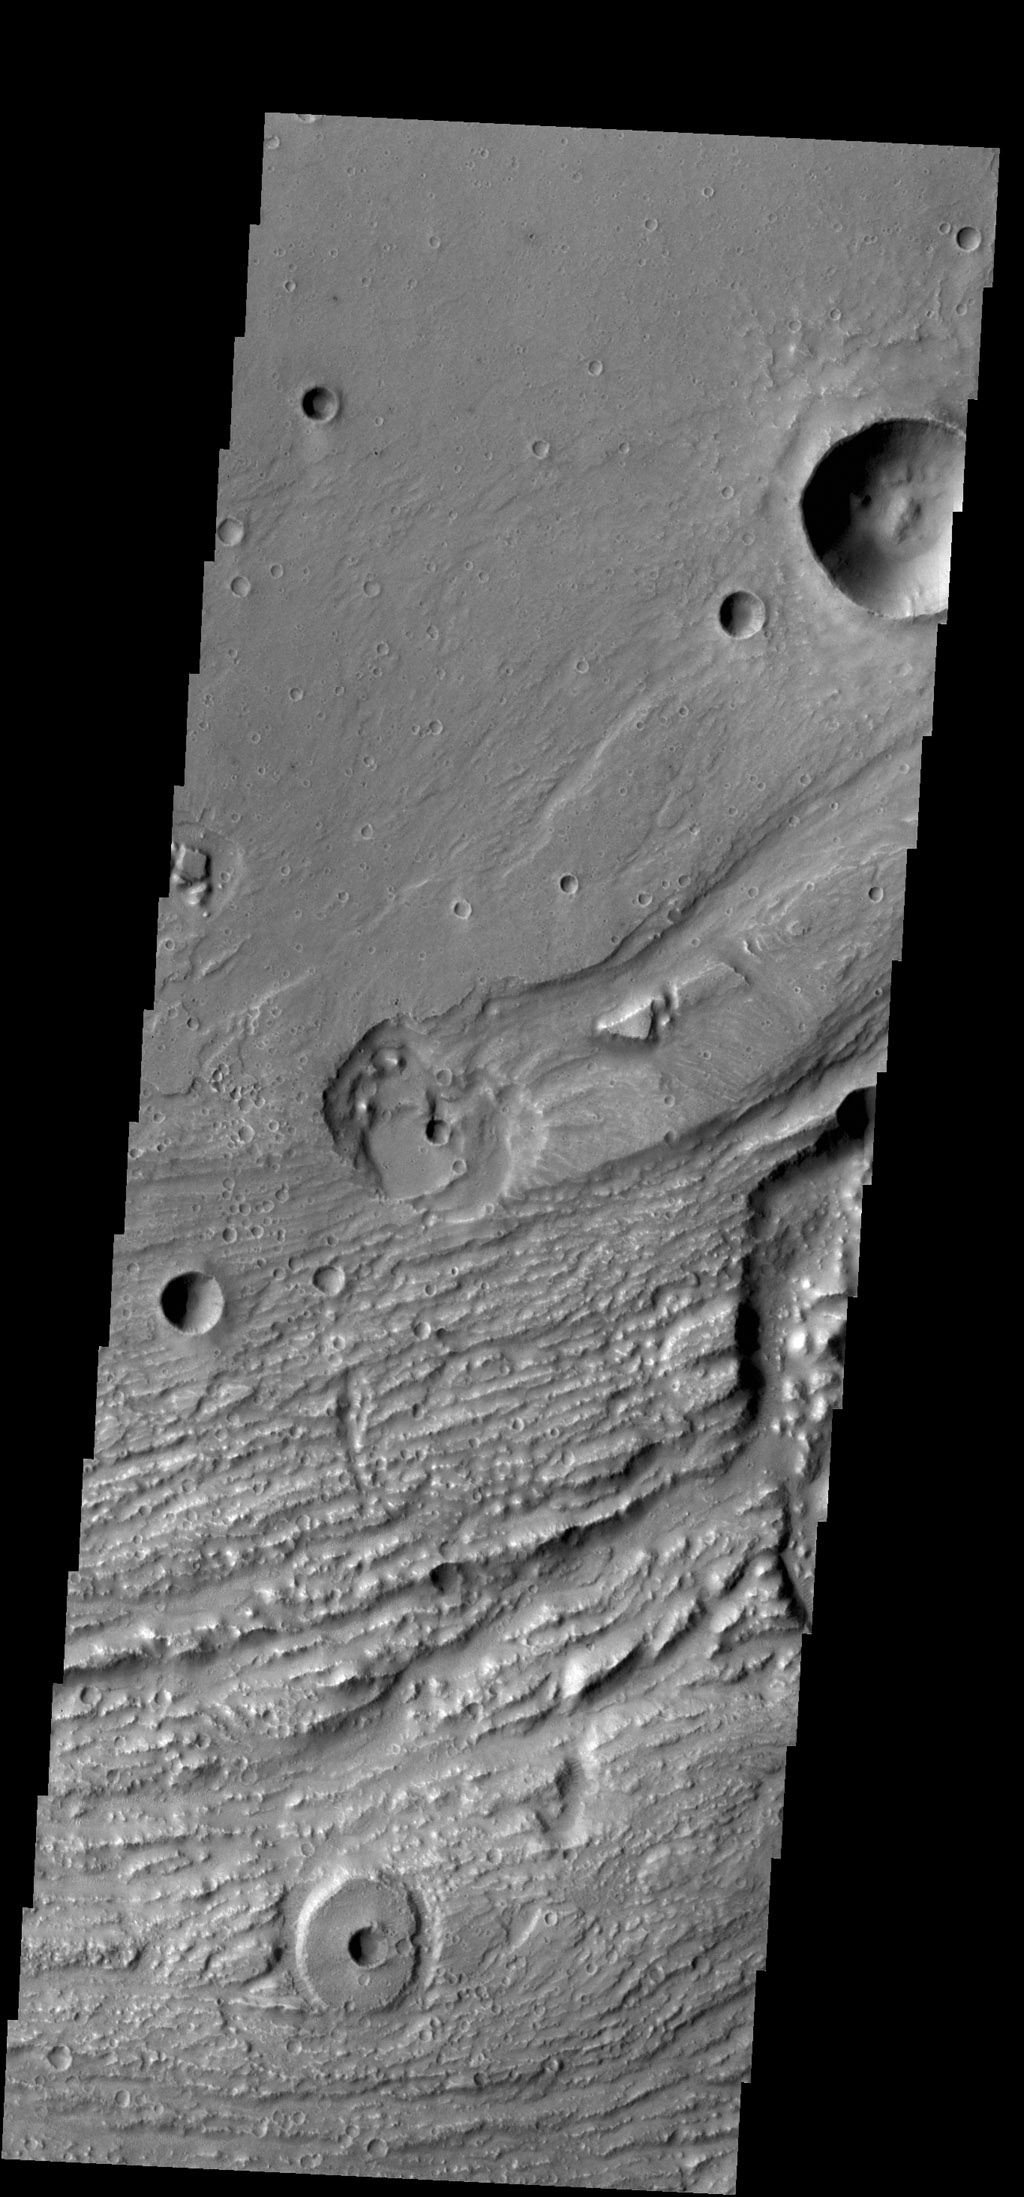 This image shows another portion of Ravi Vallis. In this image taken by NASA's 2001 Mars Odyssey spacecraft, a small crater and the resistant material formed during the impact form a 'donut' on the floor of the valley.